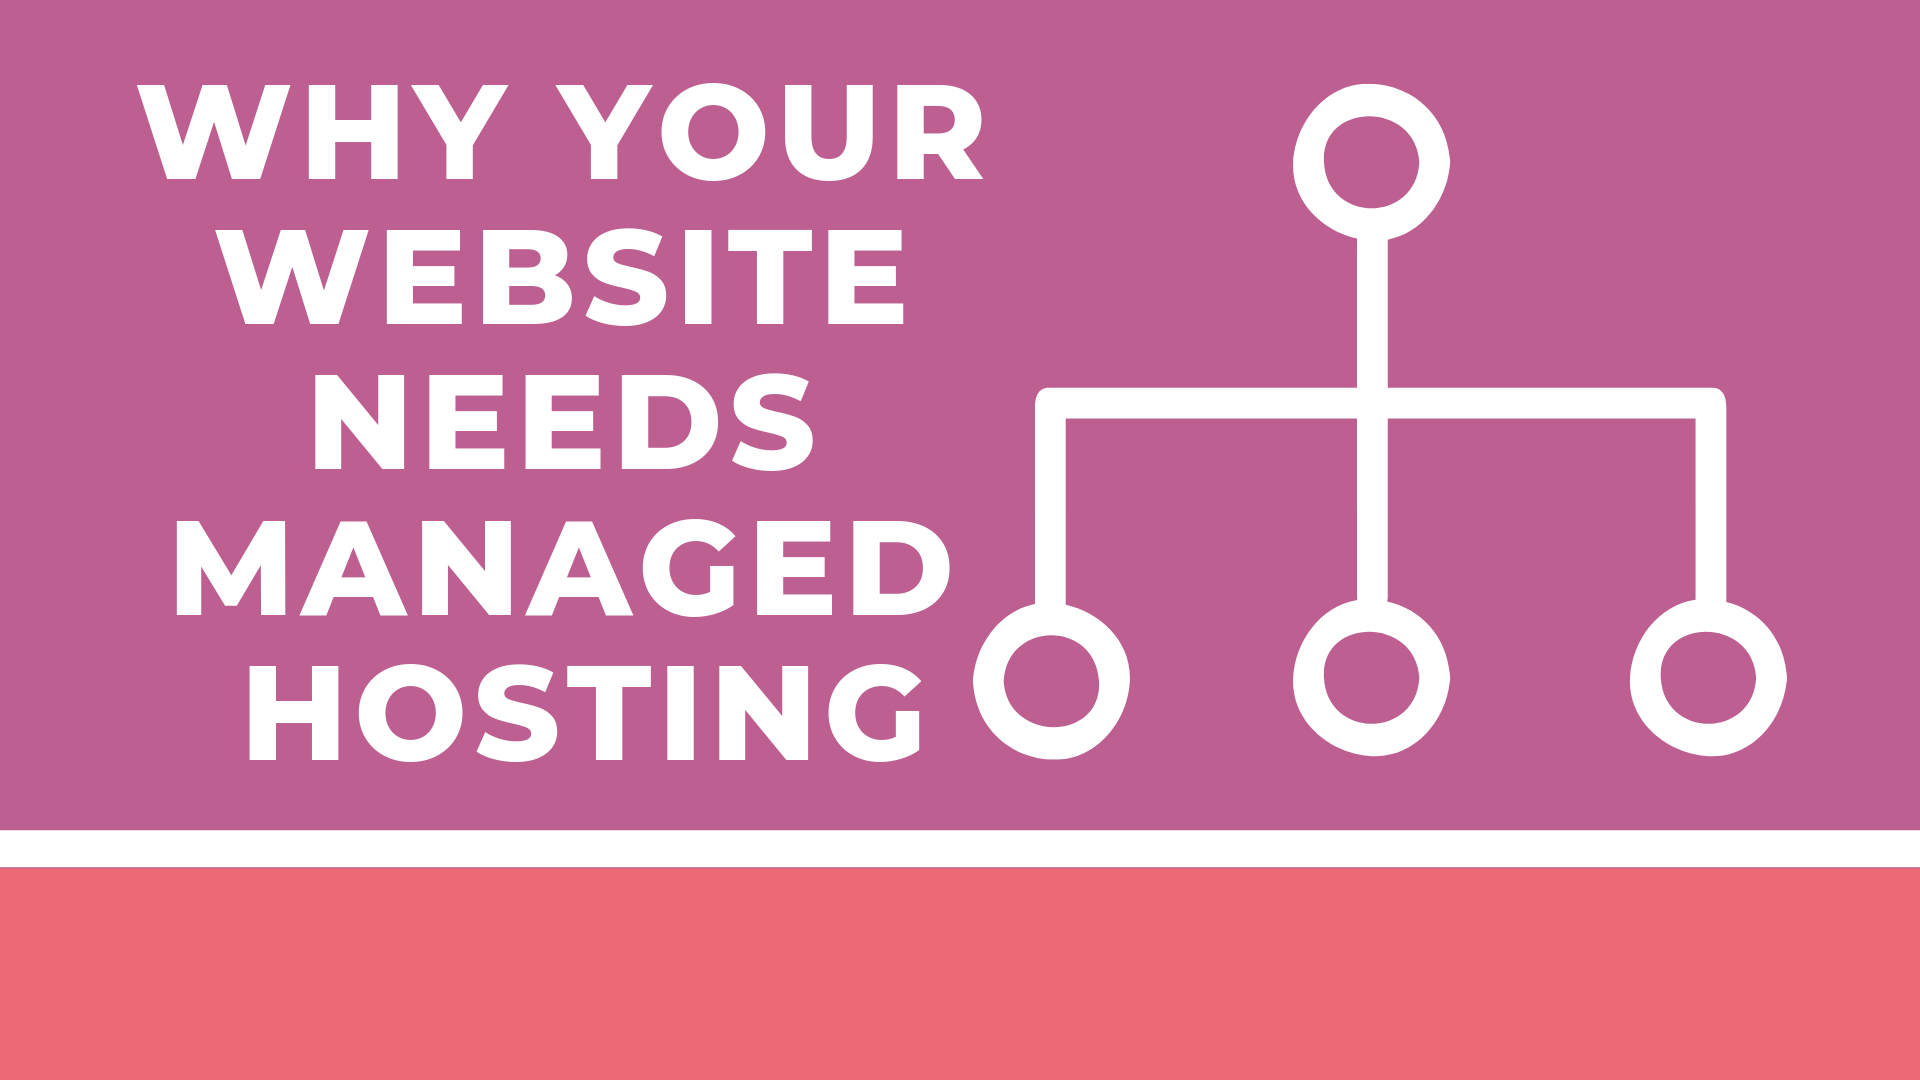 Managed Hosting for your site